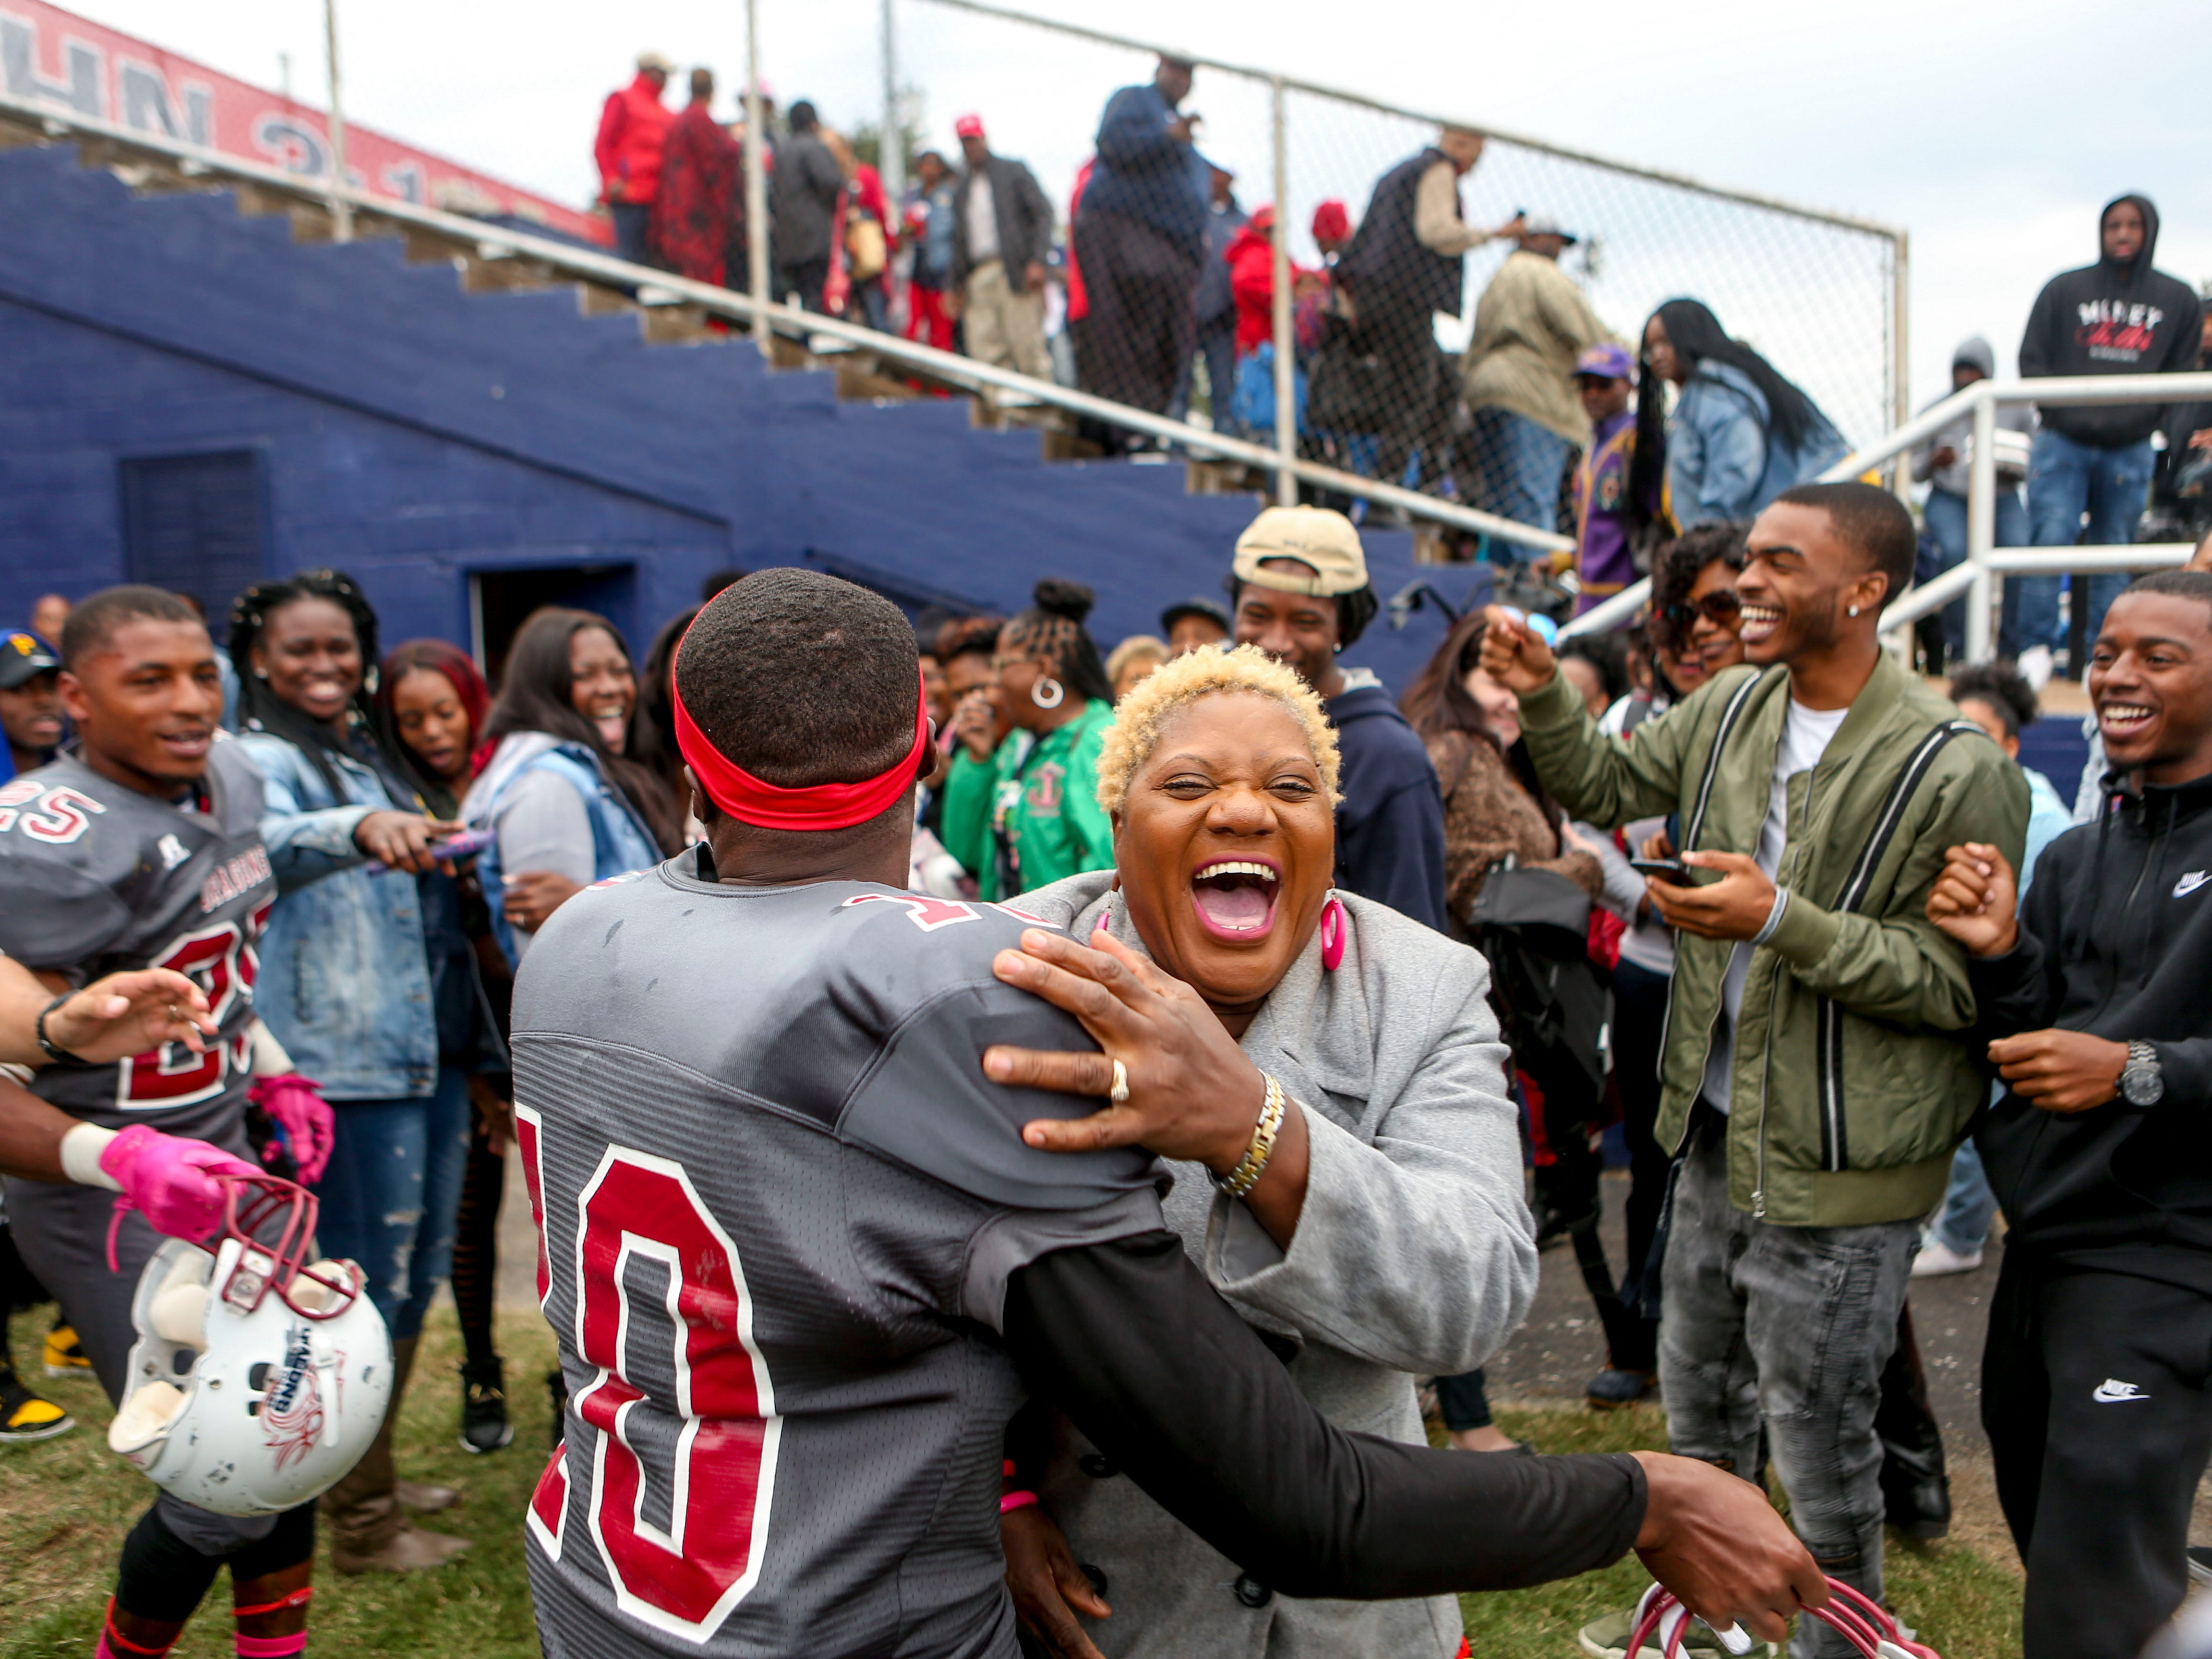 Rose Donahue erupts in laughter with her grandson Terrance Kinnie (10) after dancing to celebrate Lane College winning their homecoming game against Allen University at T.R. White Sportsplex in Jackson, Tenn., on Saturday, Oct. 13, 2018.